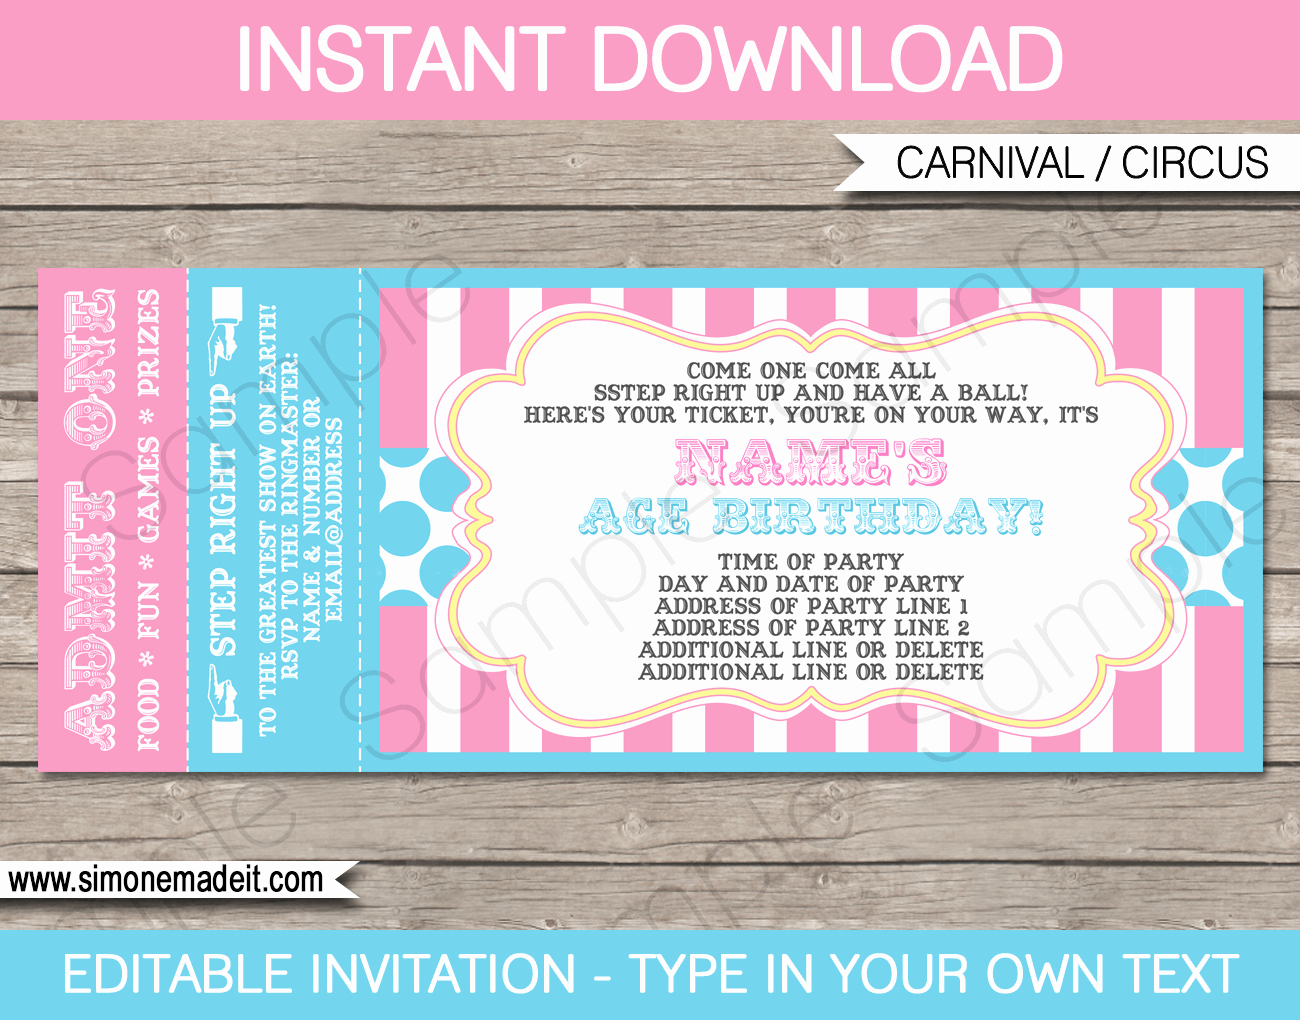 Ticket Invitation Templates Free Luxury Carnival Ticket Invitations Template Carnival